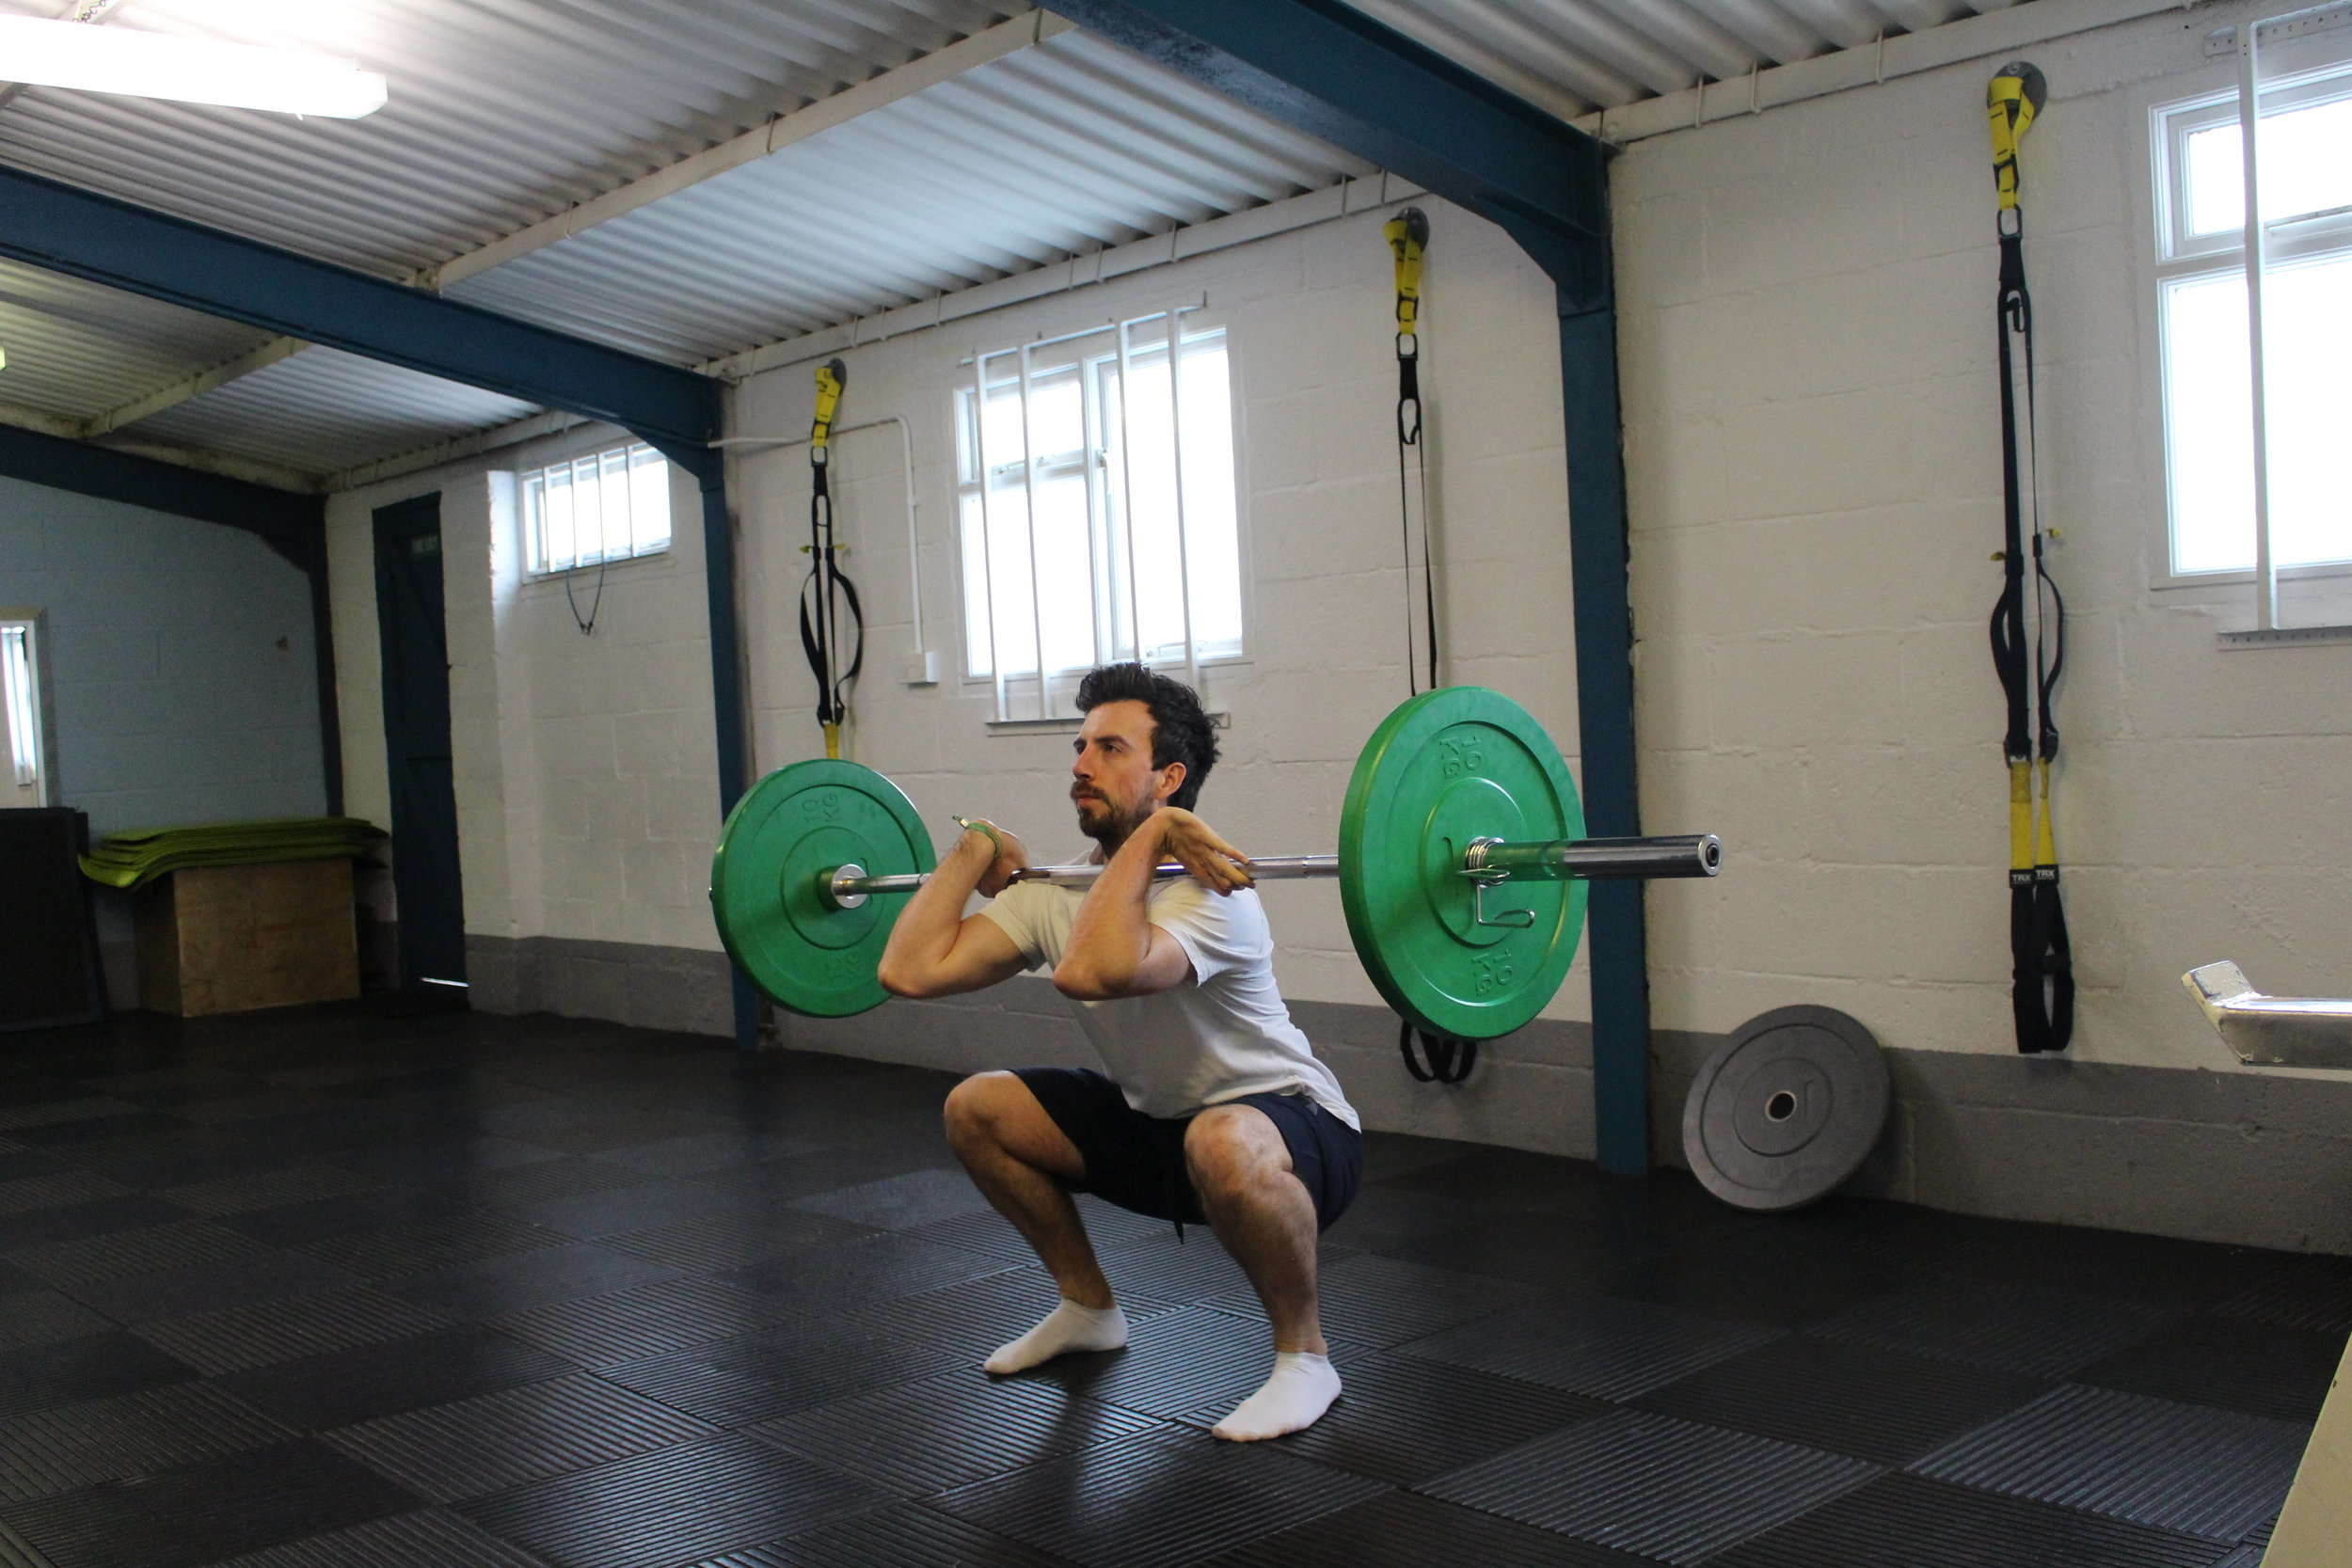 Dan, a frome-based personal trainer, exercises with a barbell in the studio.